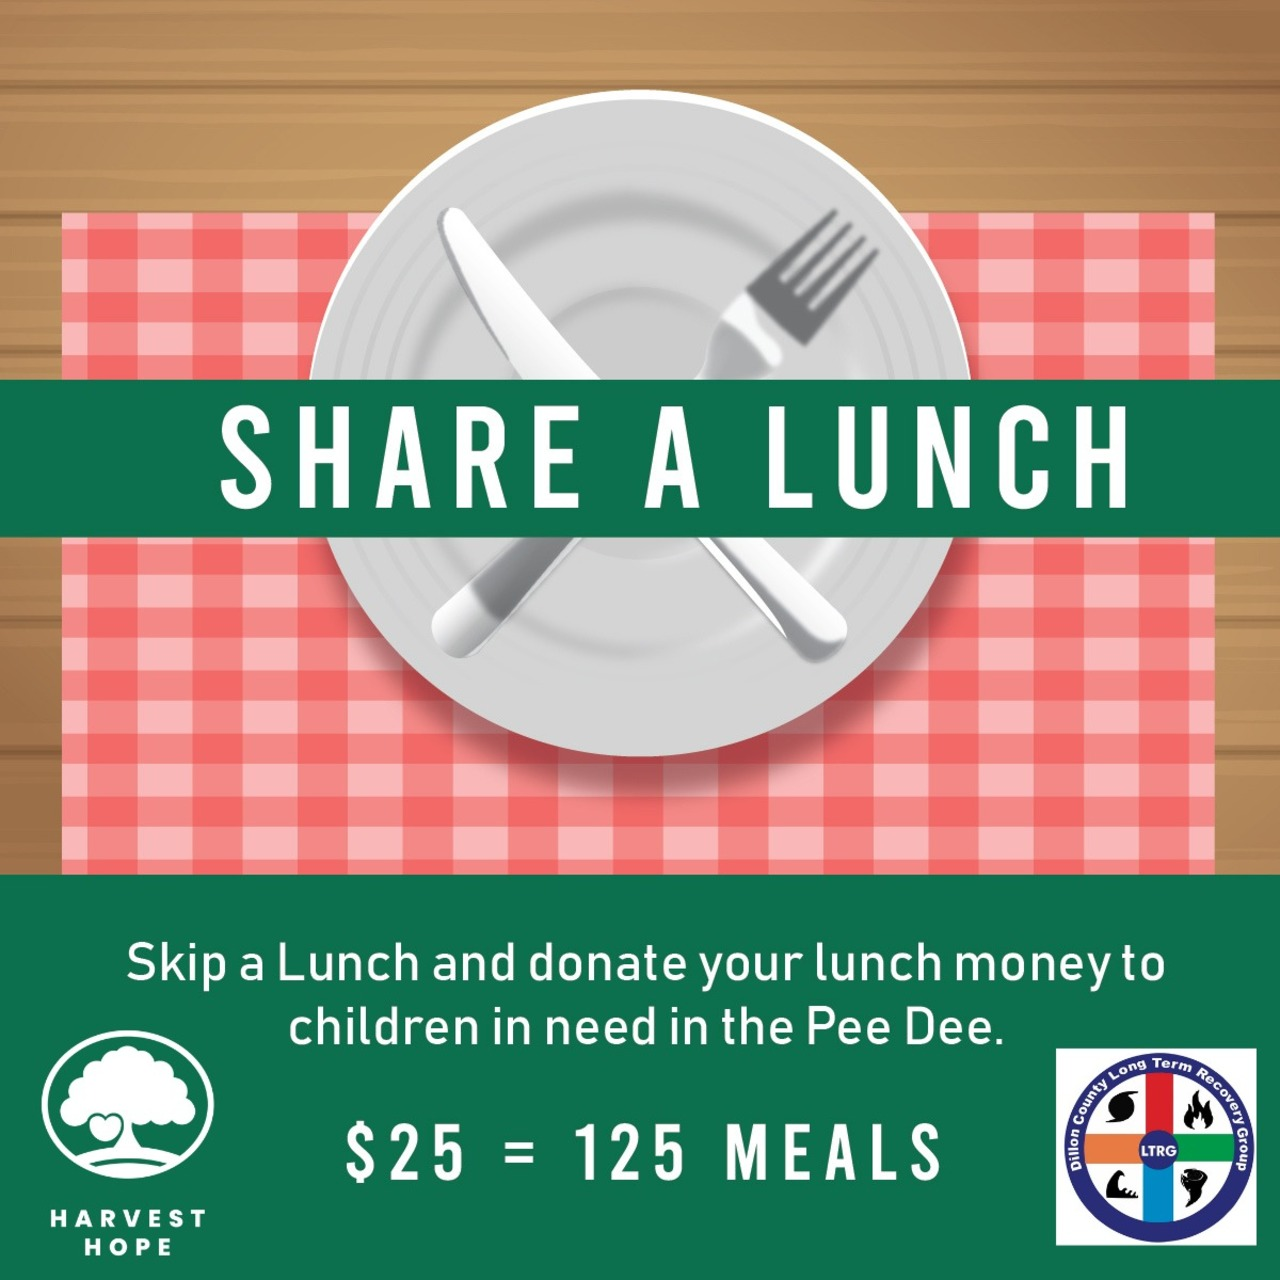 Dillon County LTRG's Share a Lunch Fundraiser for Harvest Hope Food Bank